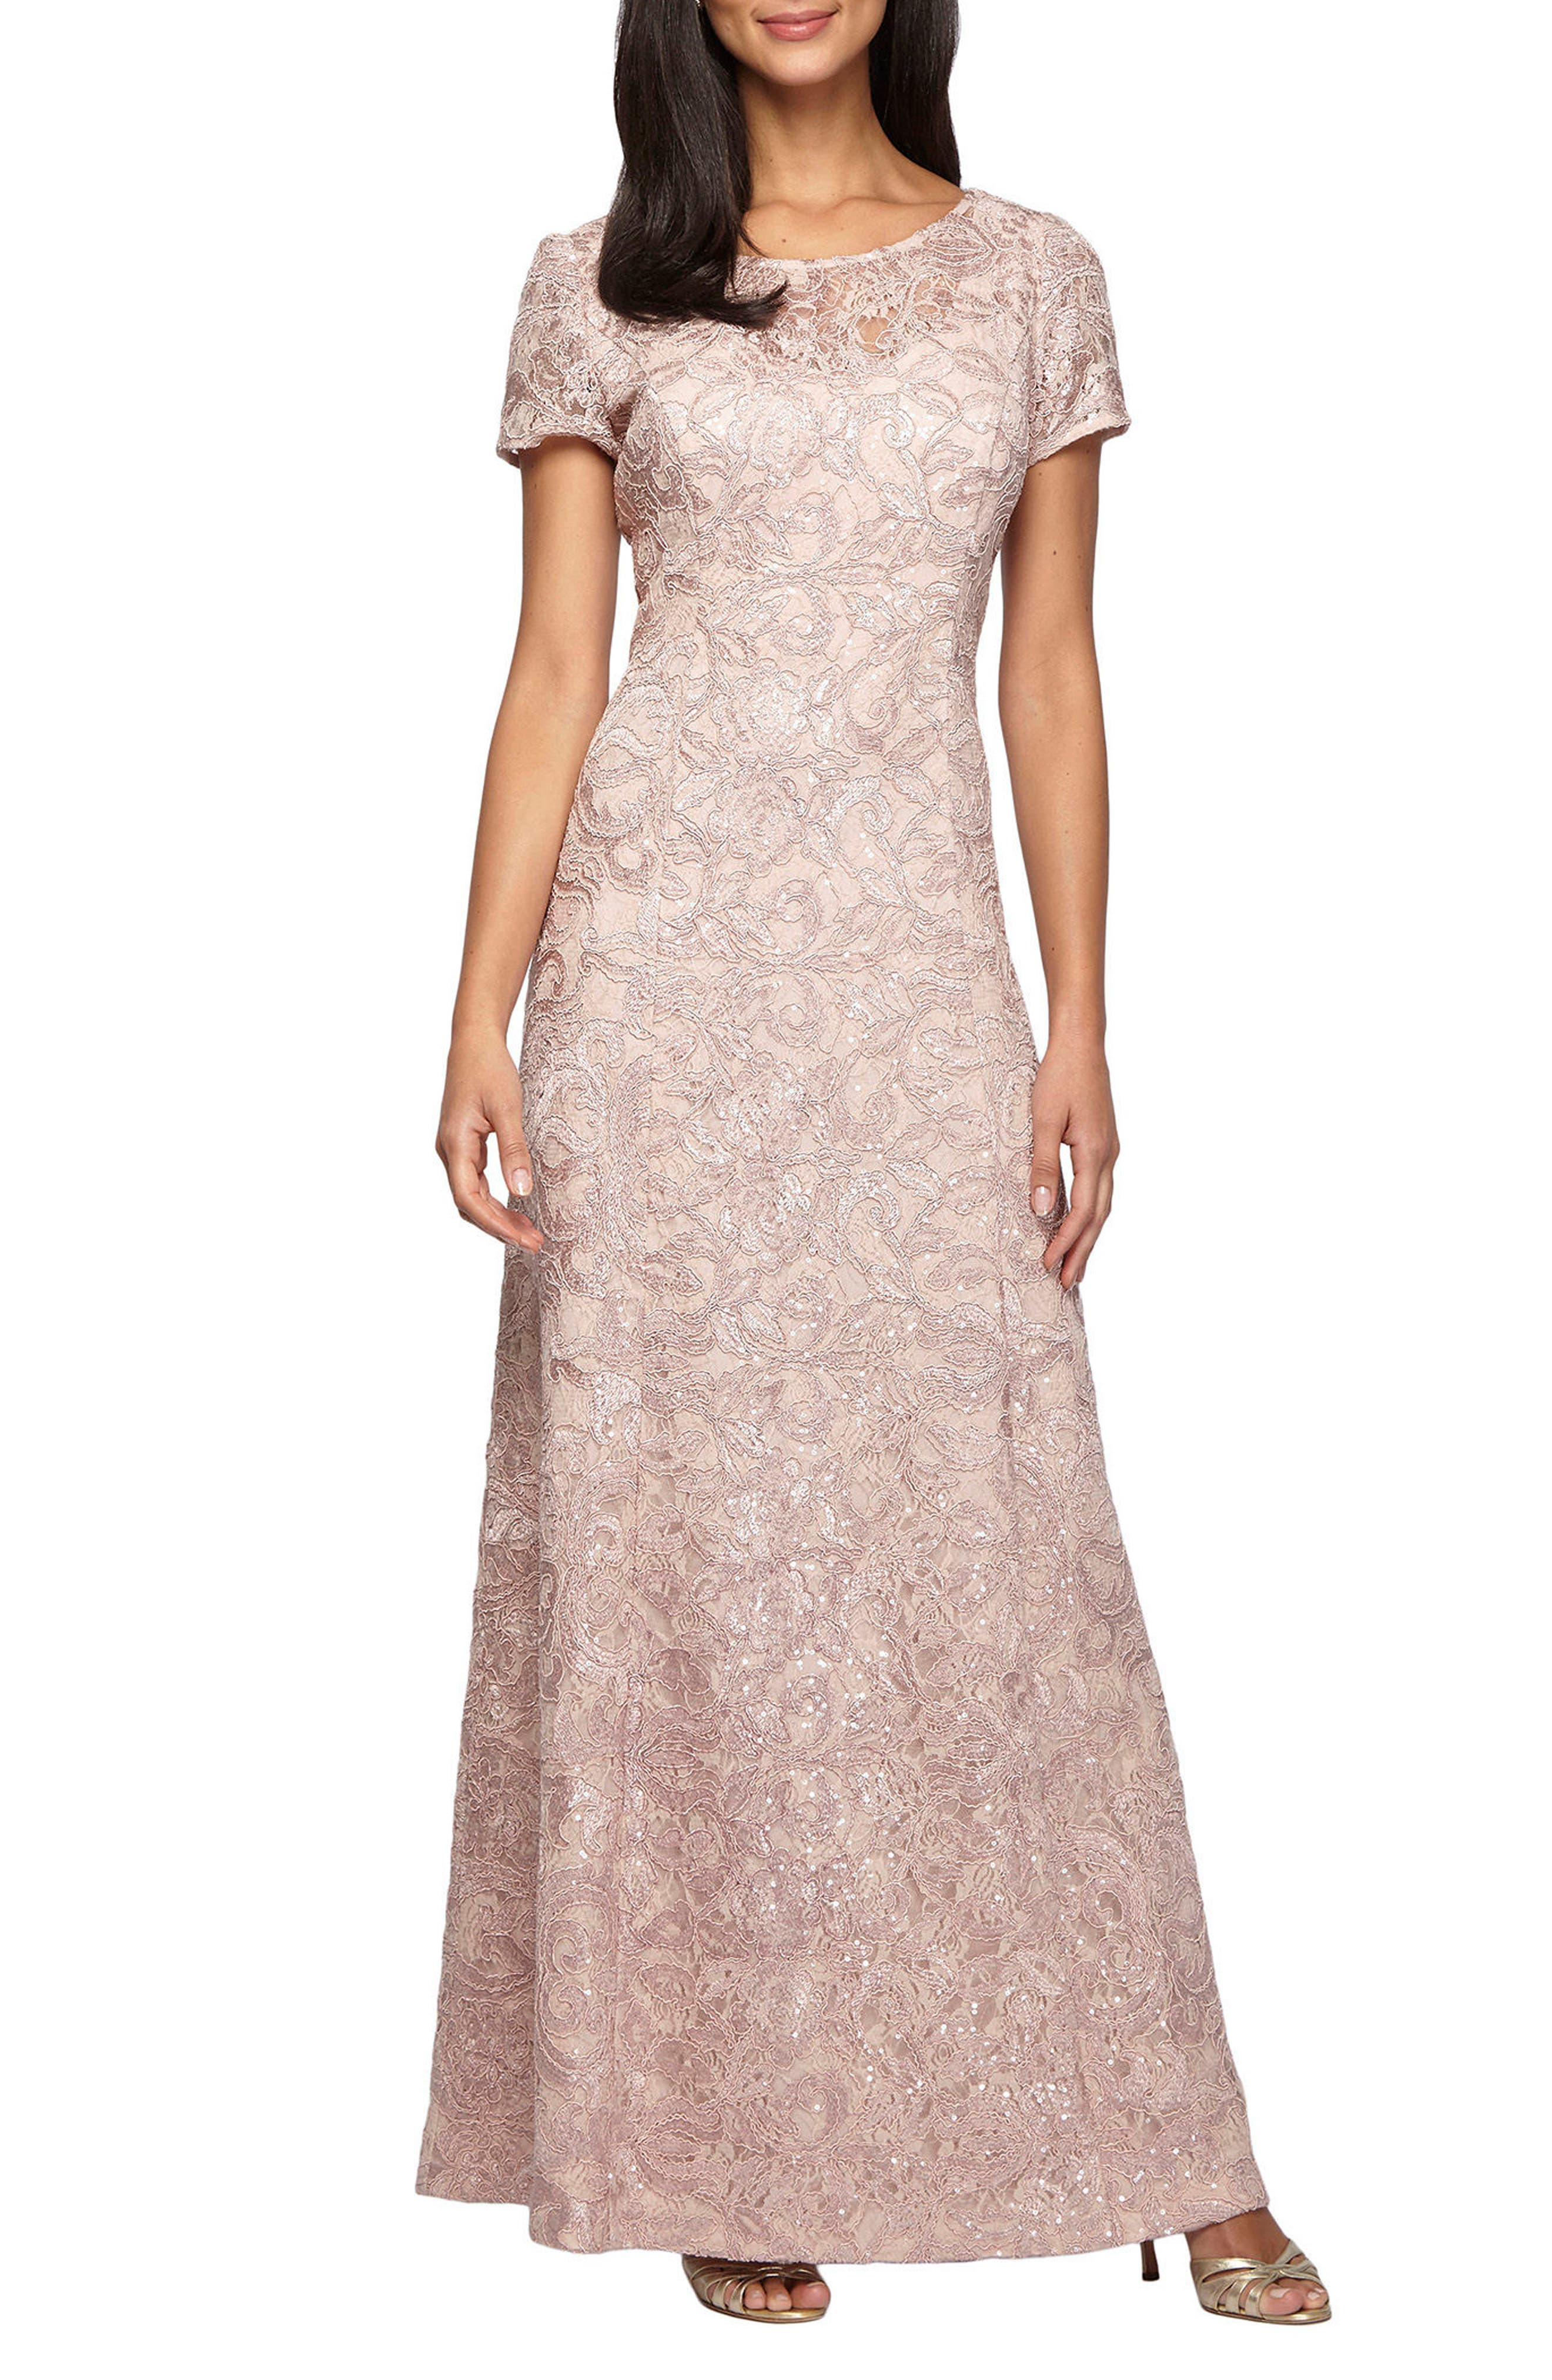 Alternate Image 1 Selected - Alex Evenings Lace A-Line Gown (Petite)